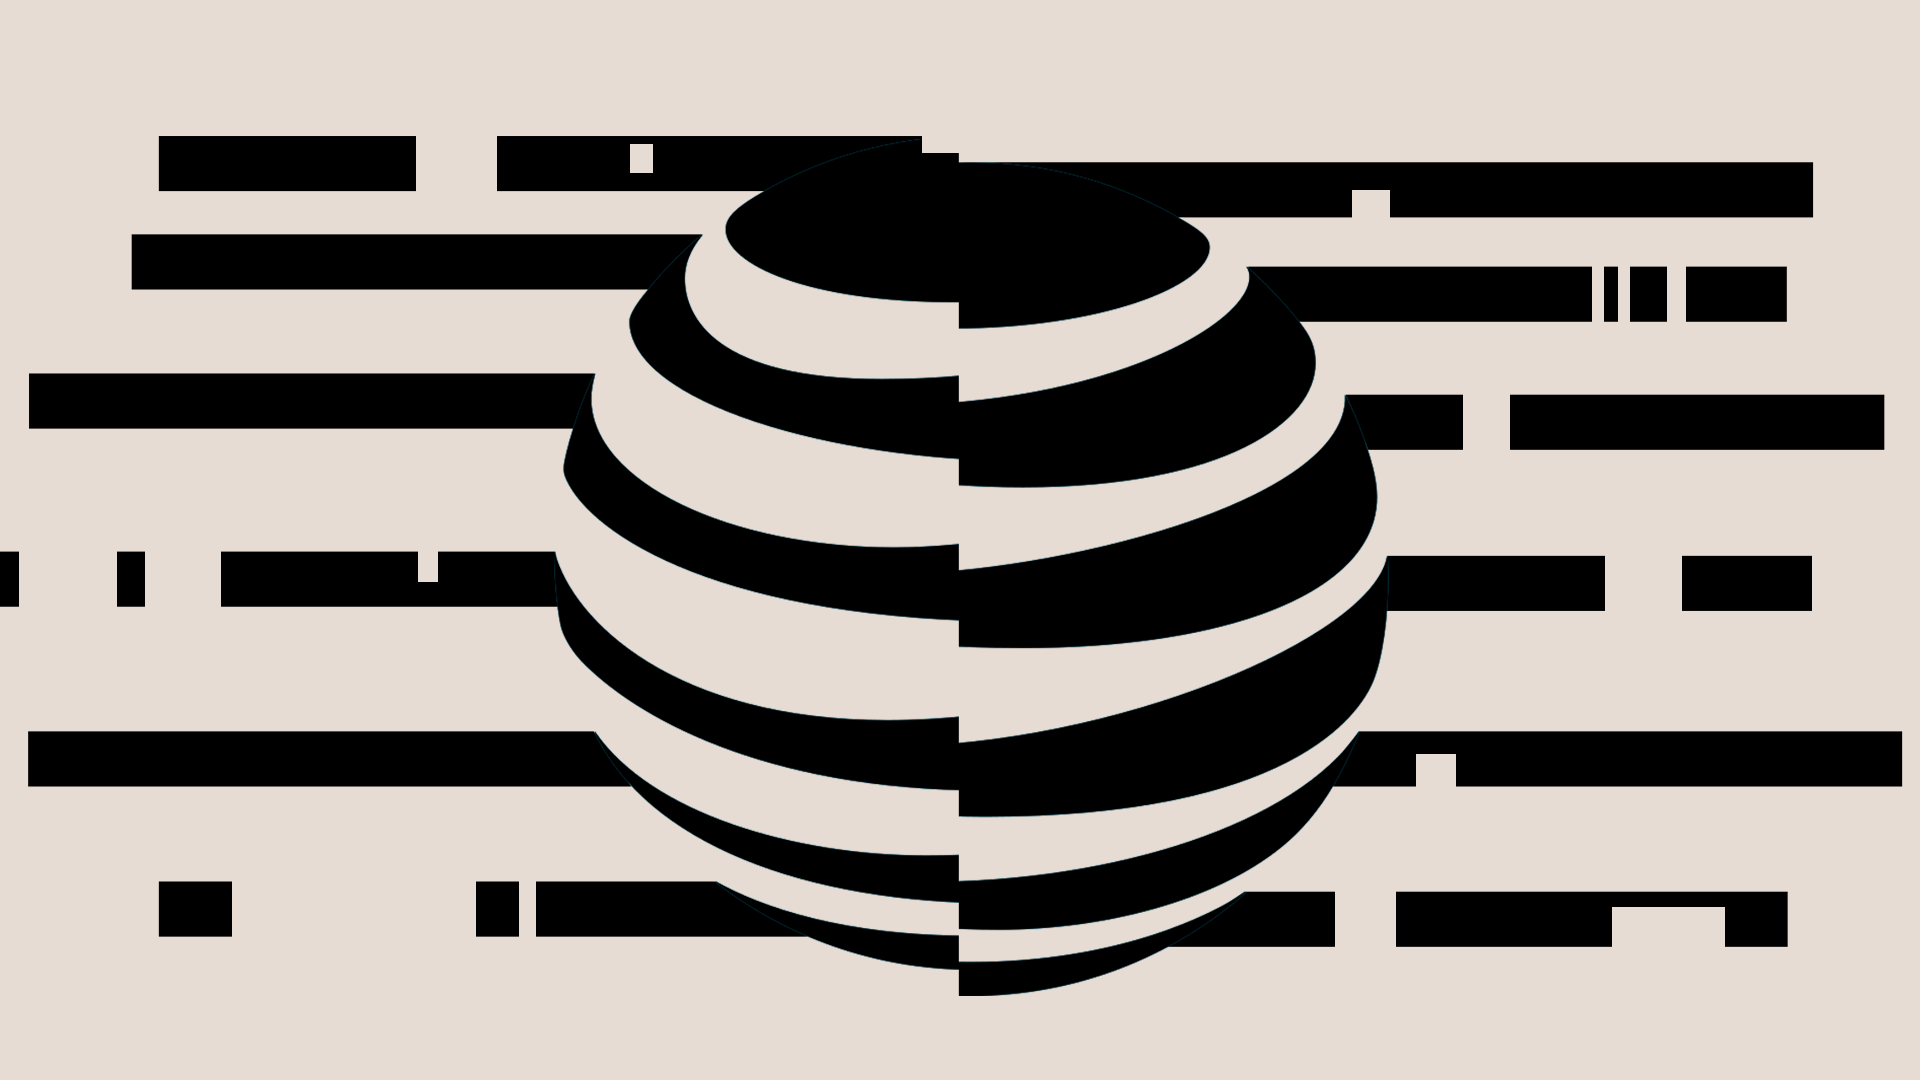 A illustration with a distorted version of AT&T's logo against a beige backdrop